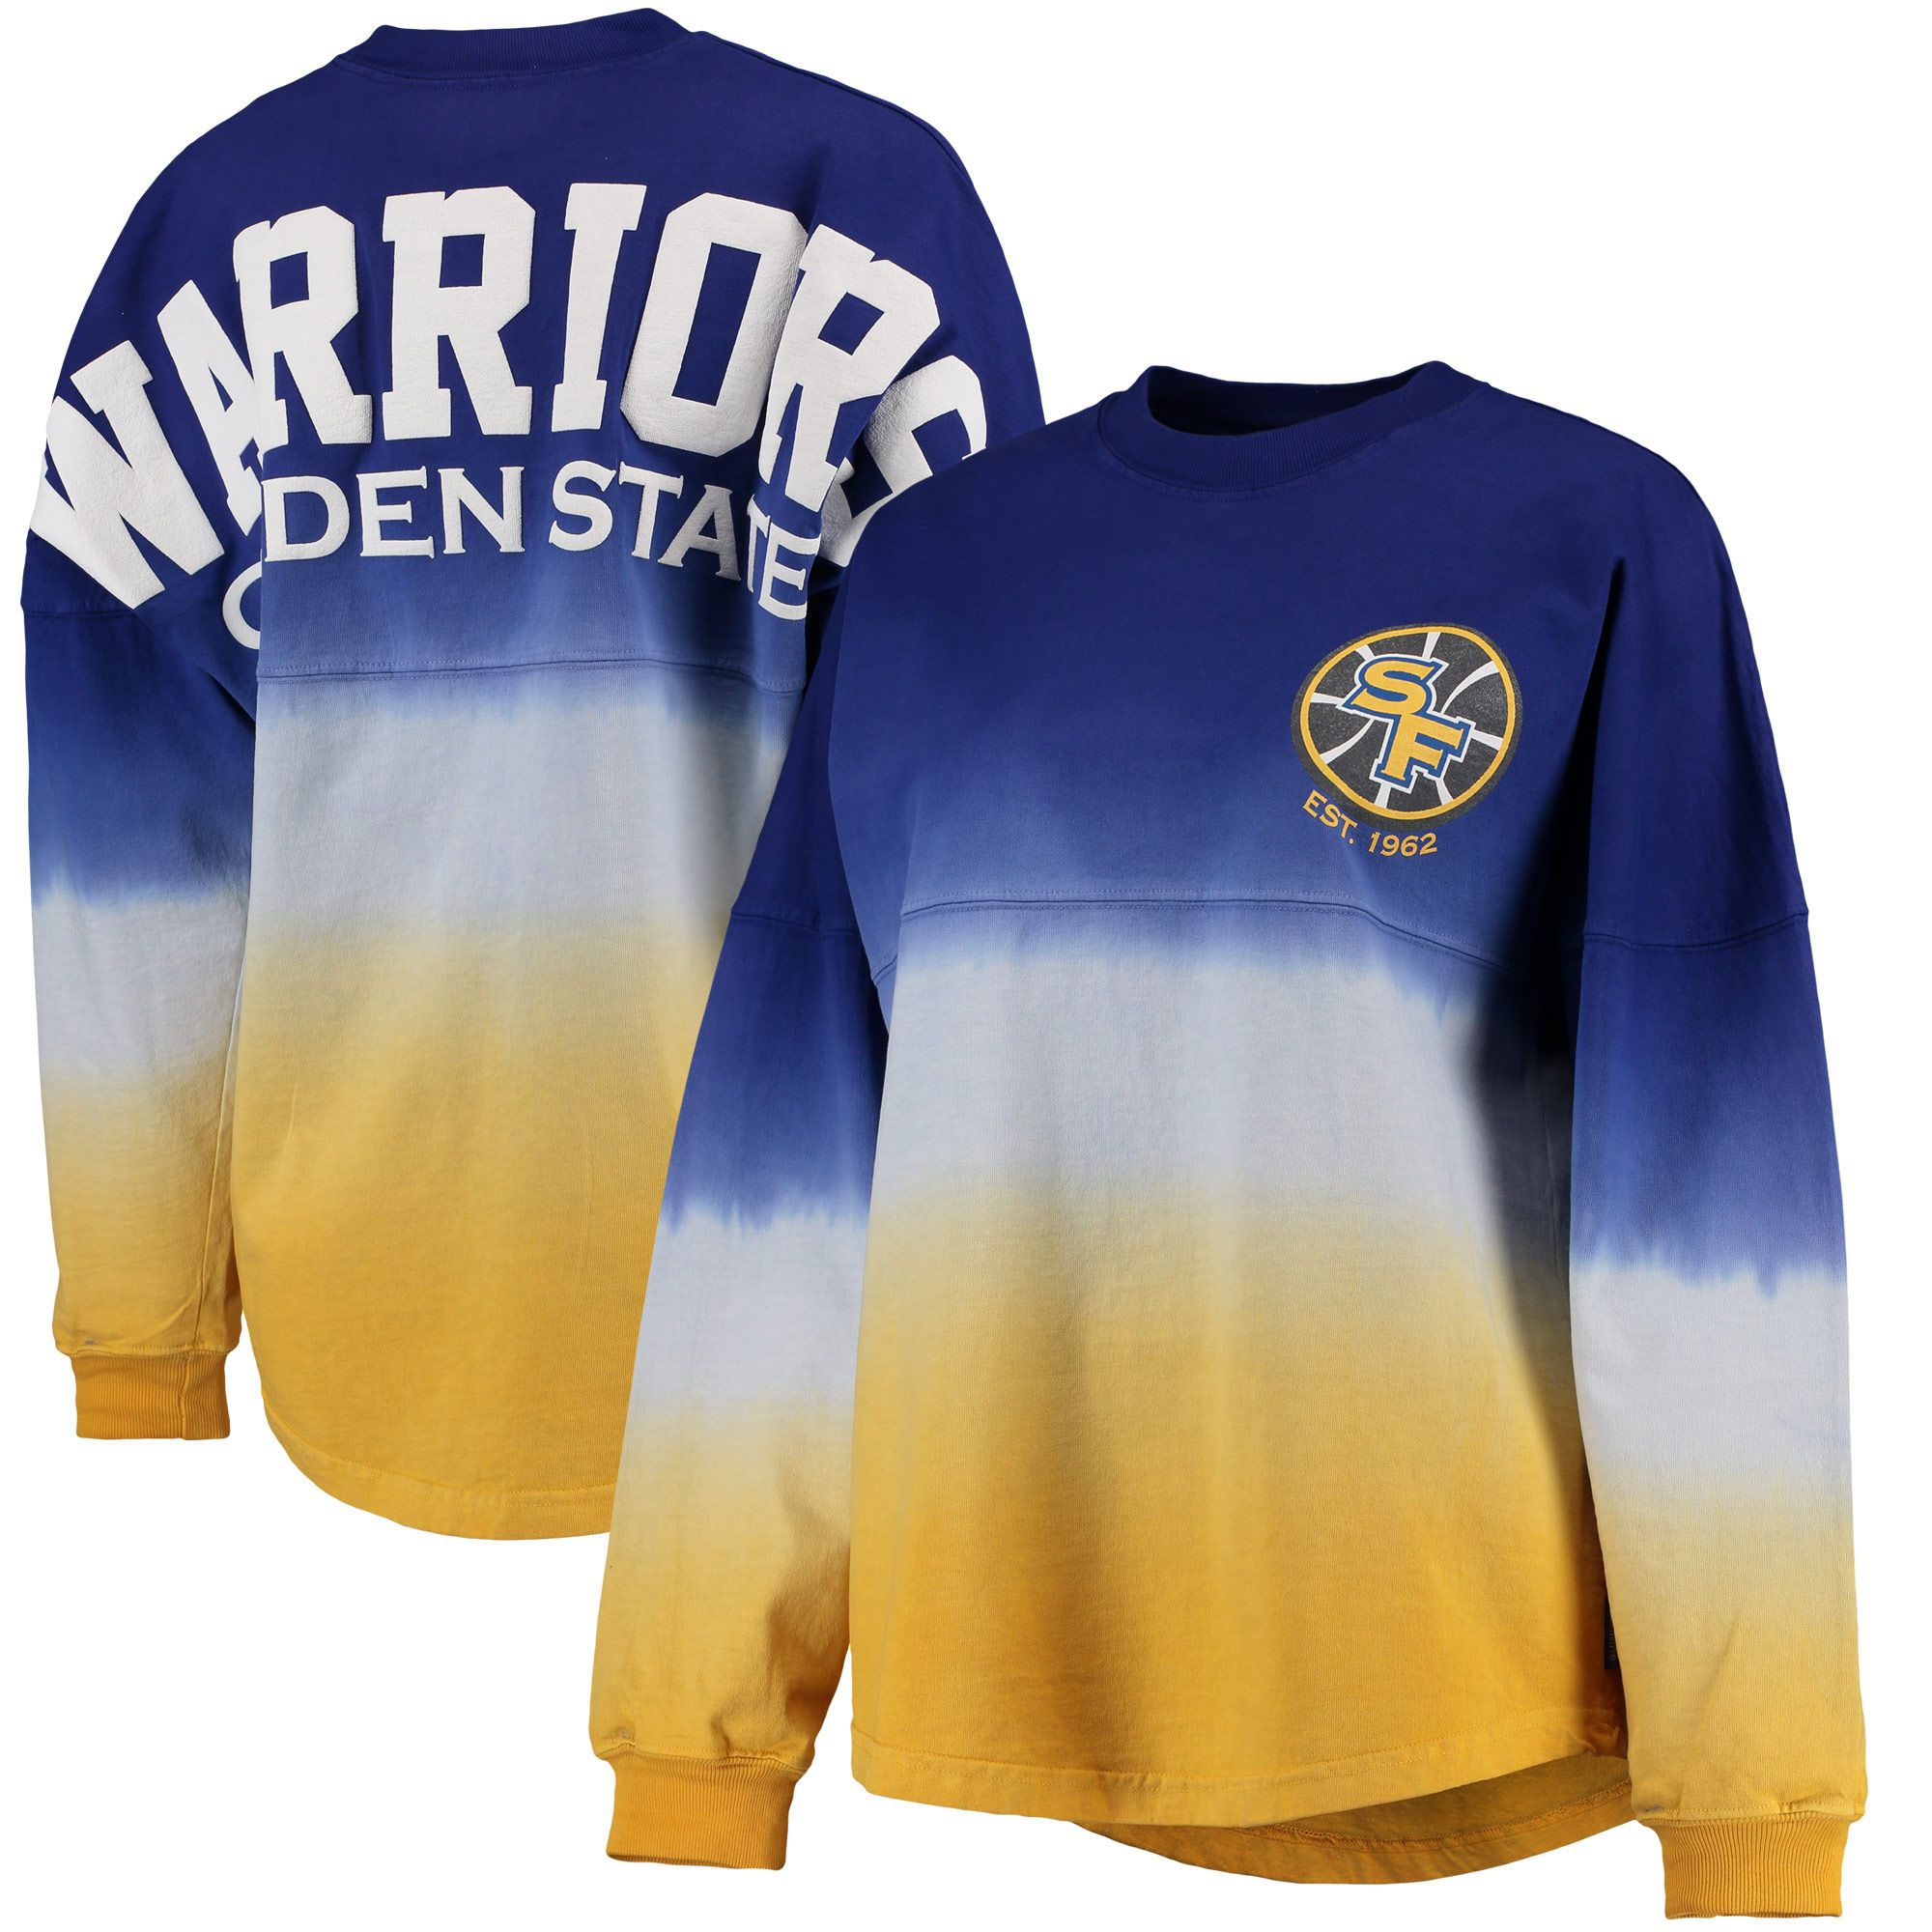 4186a9cc0 Golden State Warriors Fanatics Branded Women s Spirit Jersey Classic Long  Sleeve T-Shirt - Royal Gold